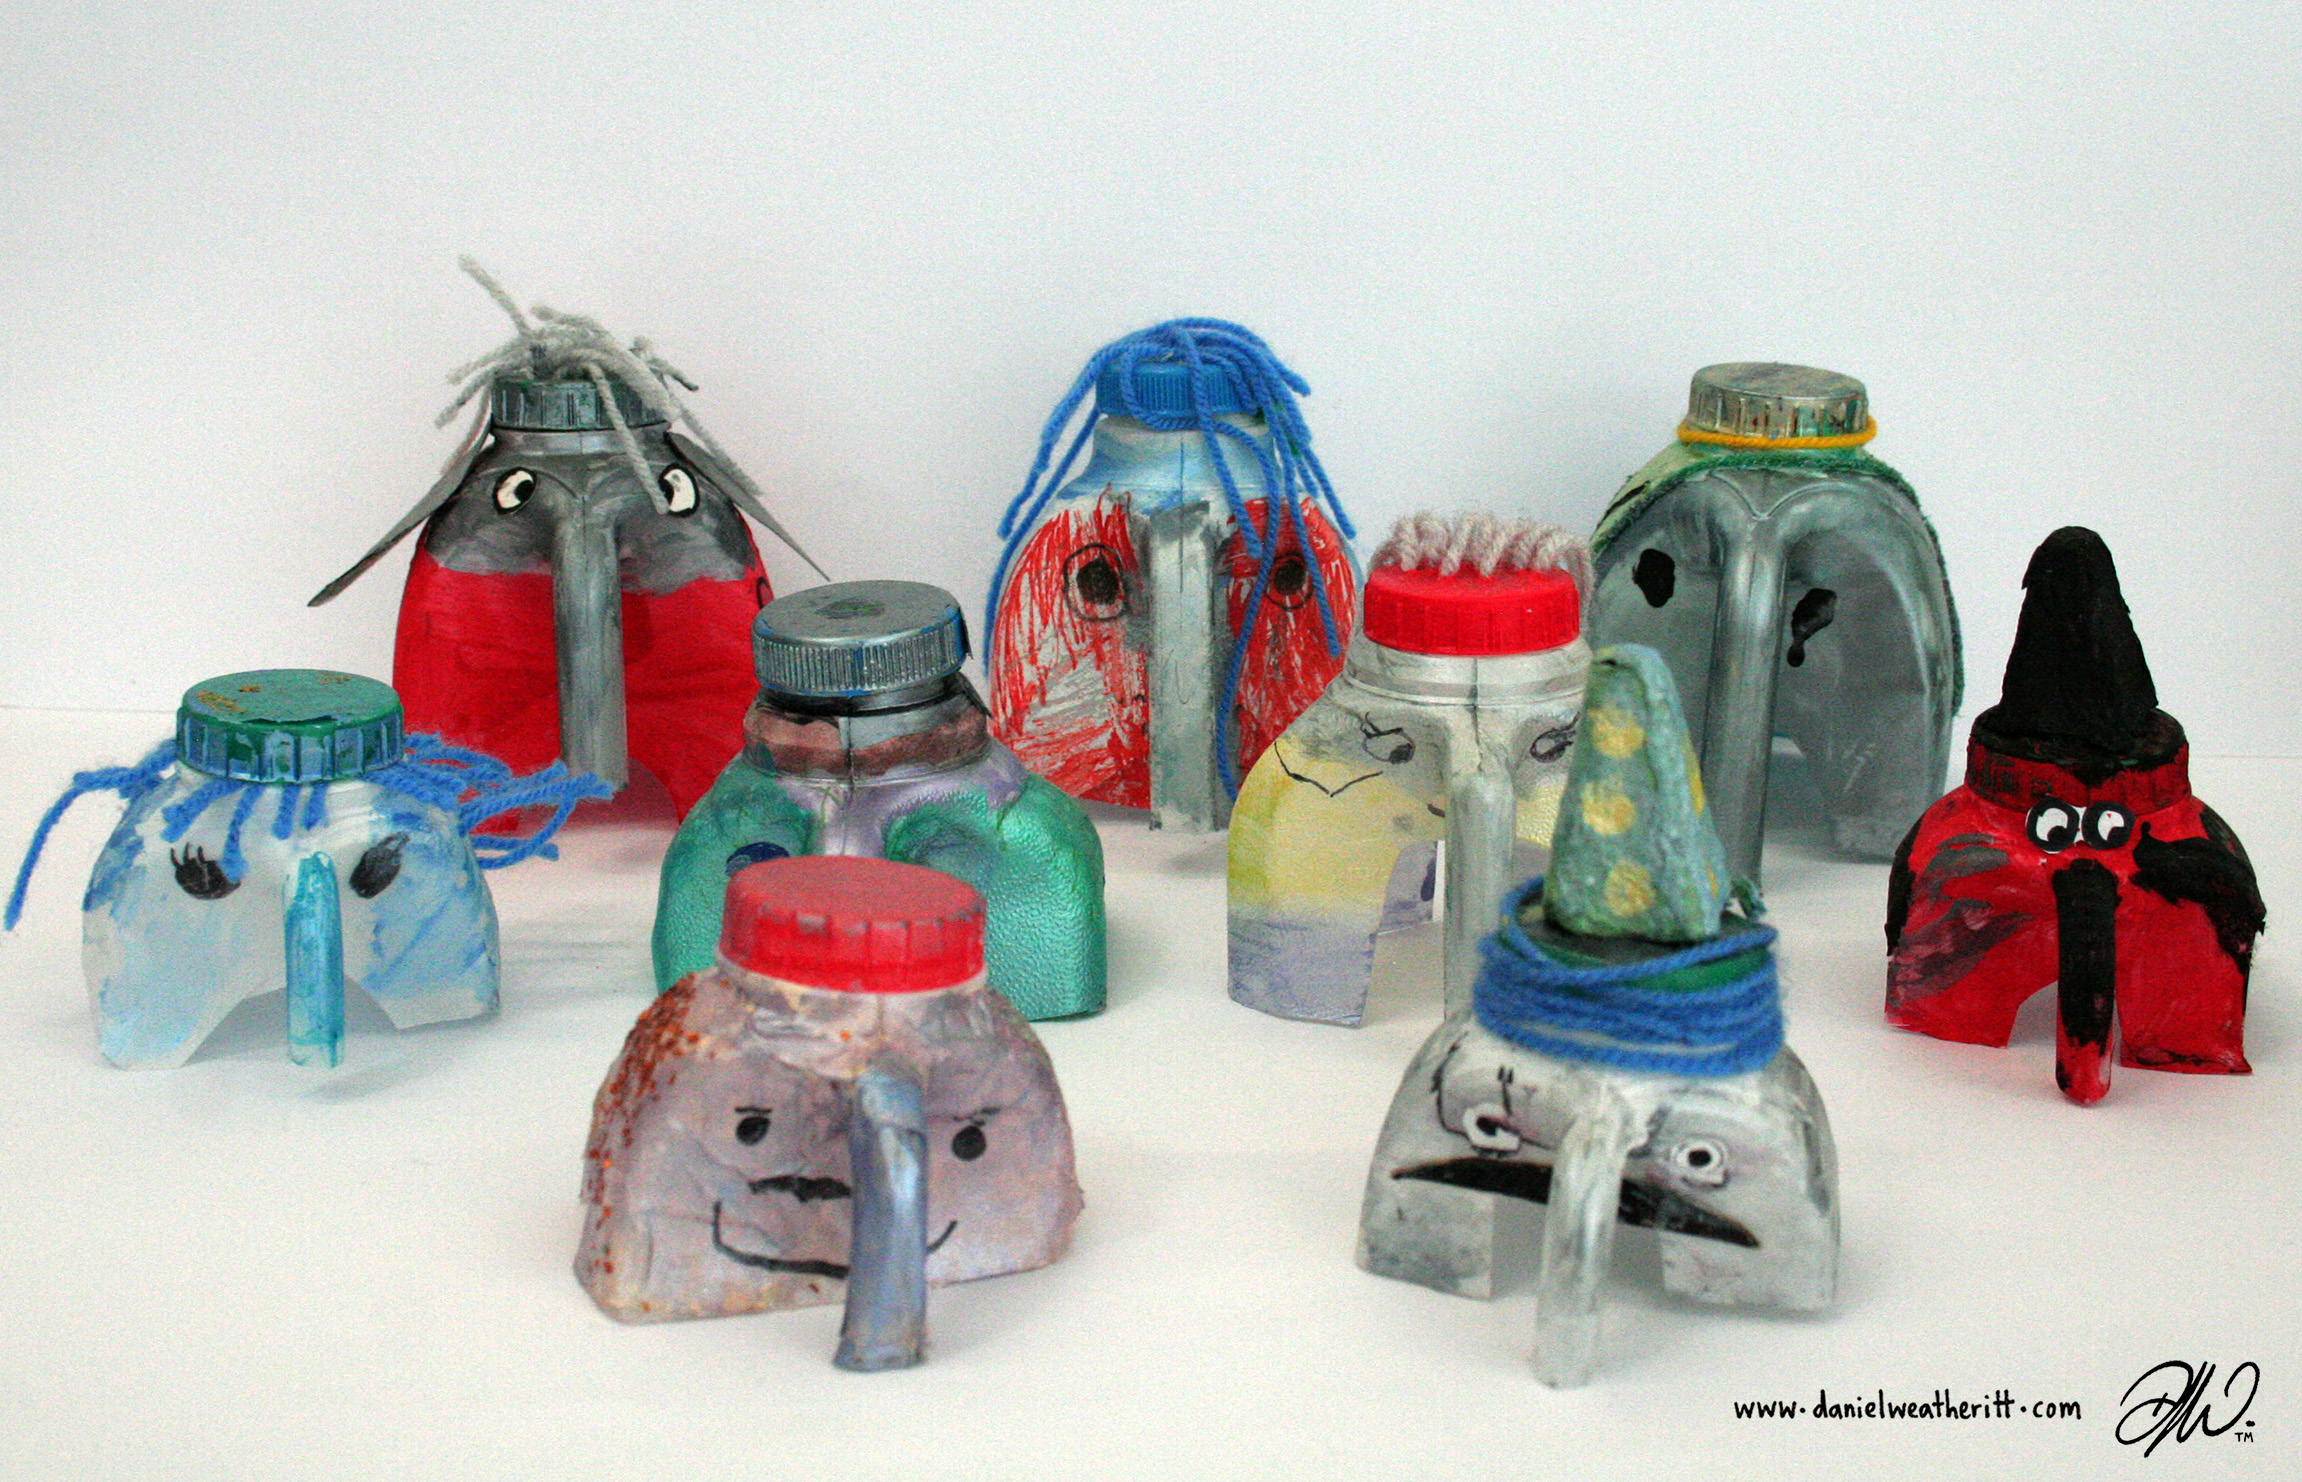 <b>Recycled Junk Elephant Sculptures</b> - by Cragside Primary School Pupils - 2 of 4